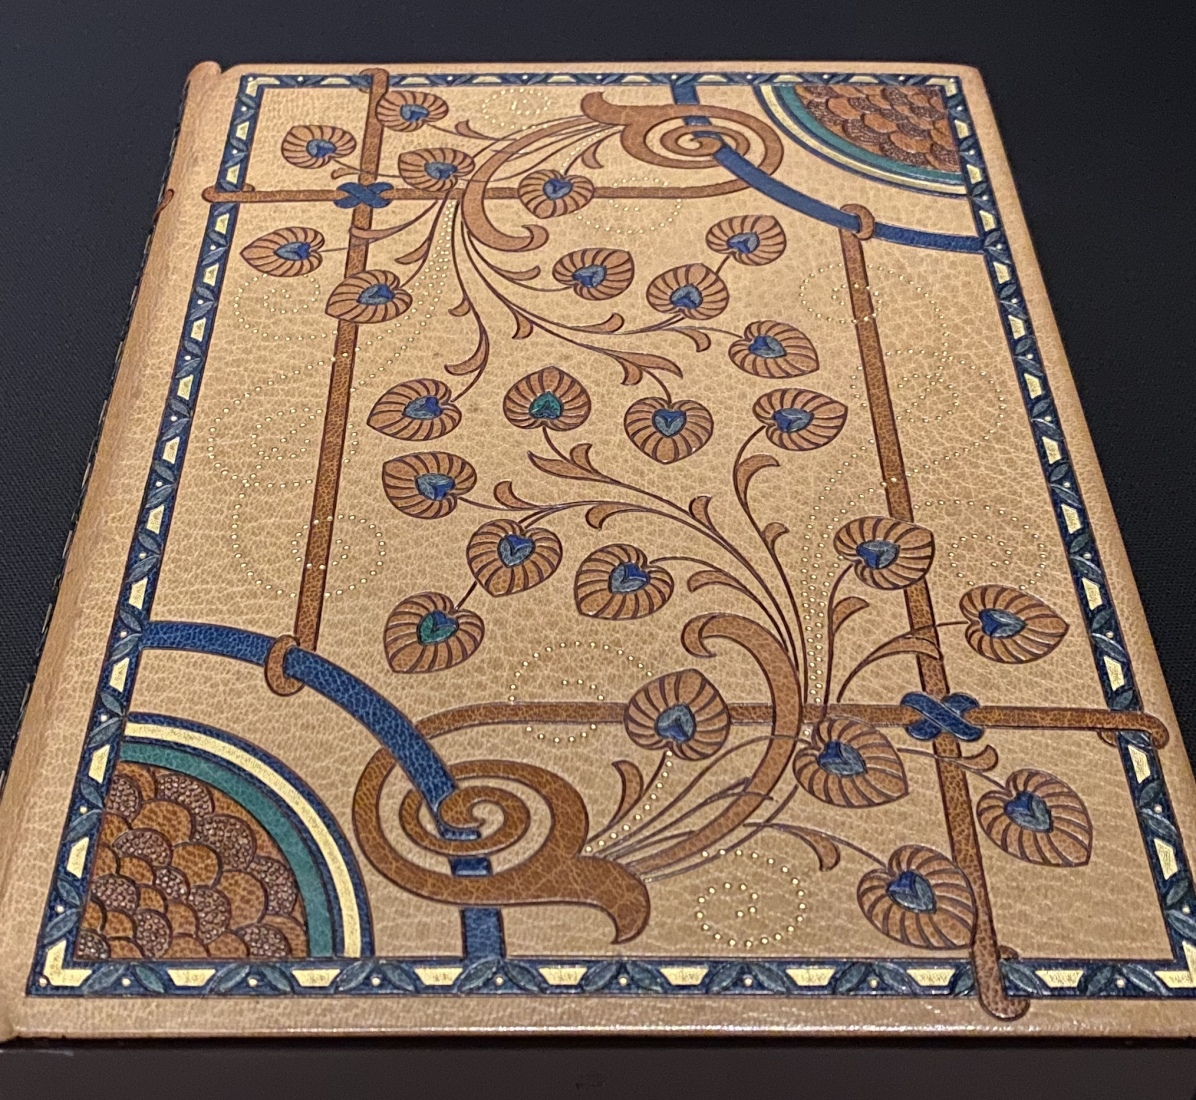 Books of the Art Nouveau